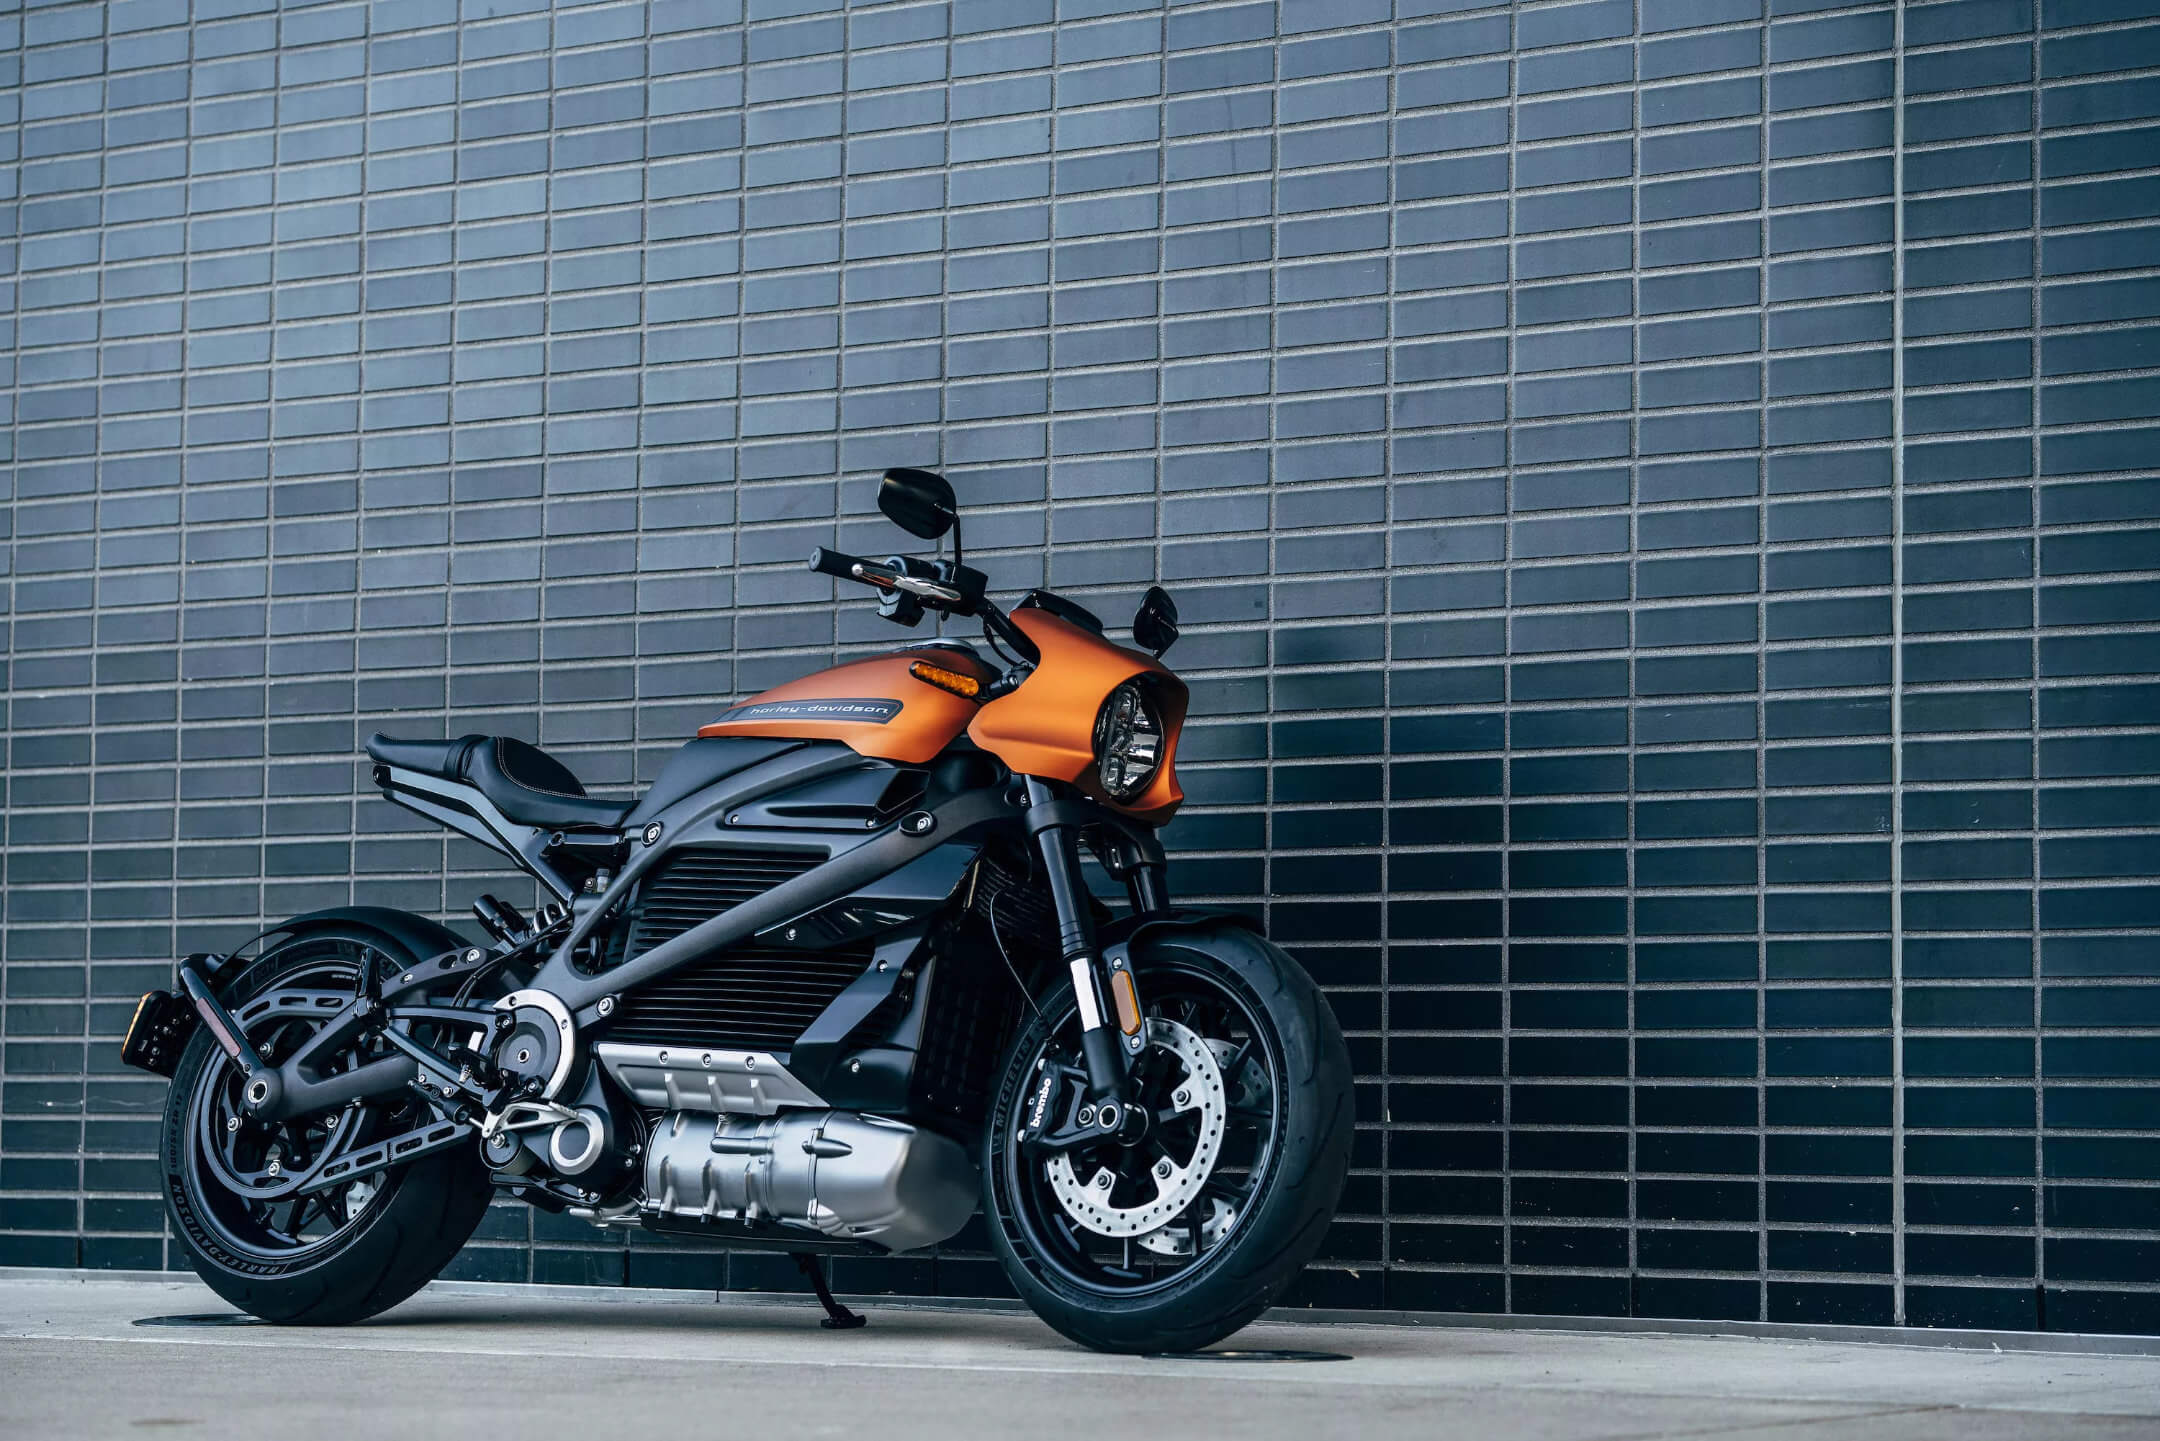 Harley-Davidson suspends production of its first-ever electric motorcycle